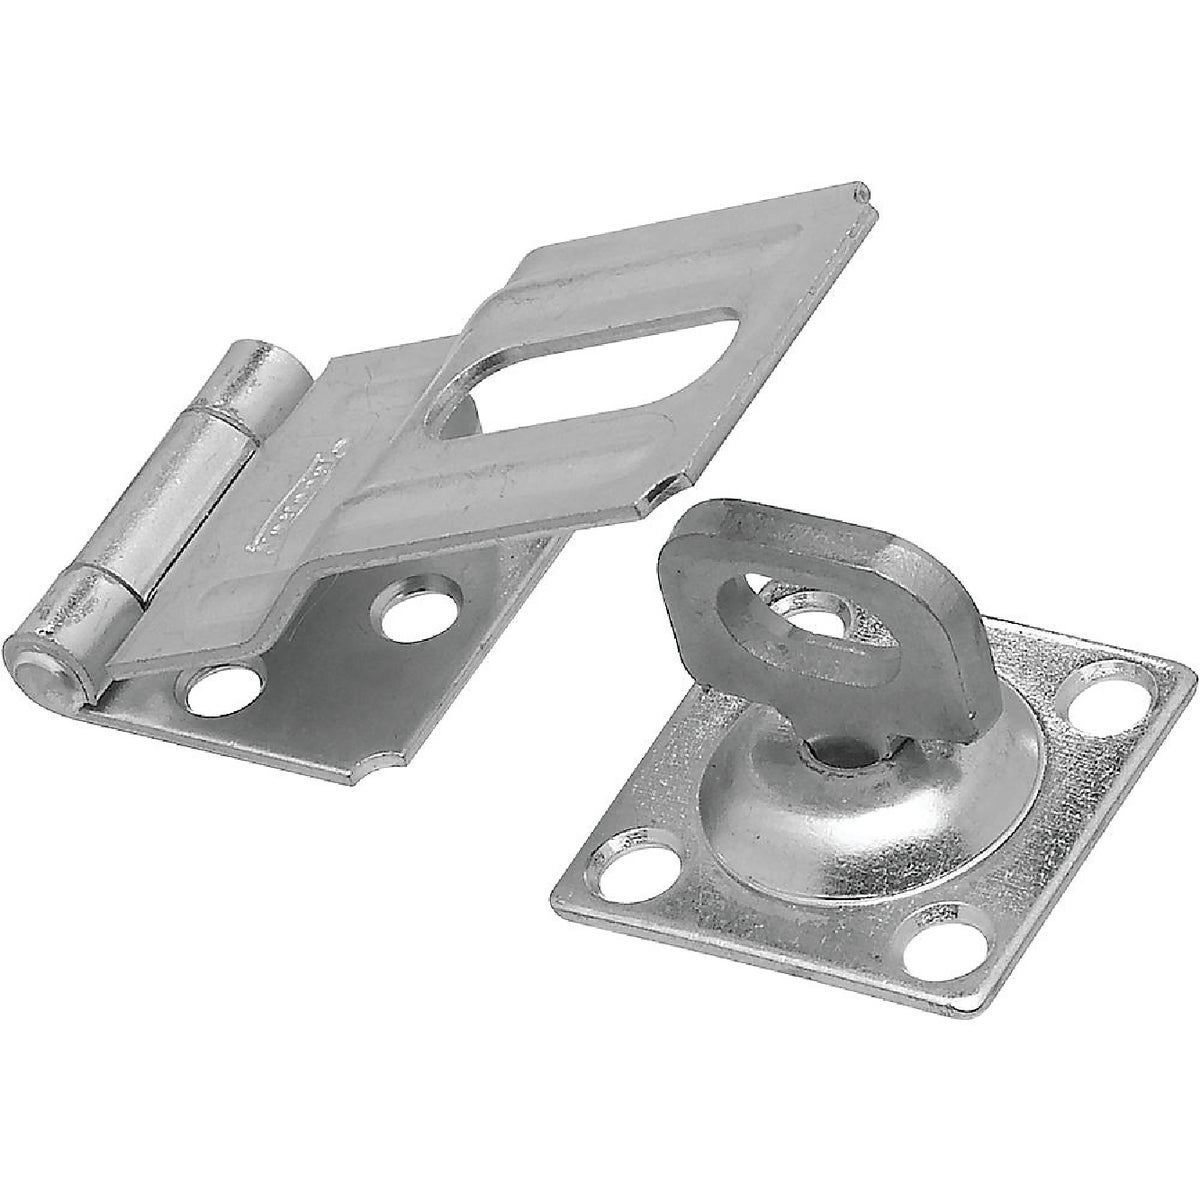 "3-1/4""SWIVEL SAFETY HASP - N102855 by National Mfg Co"